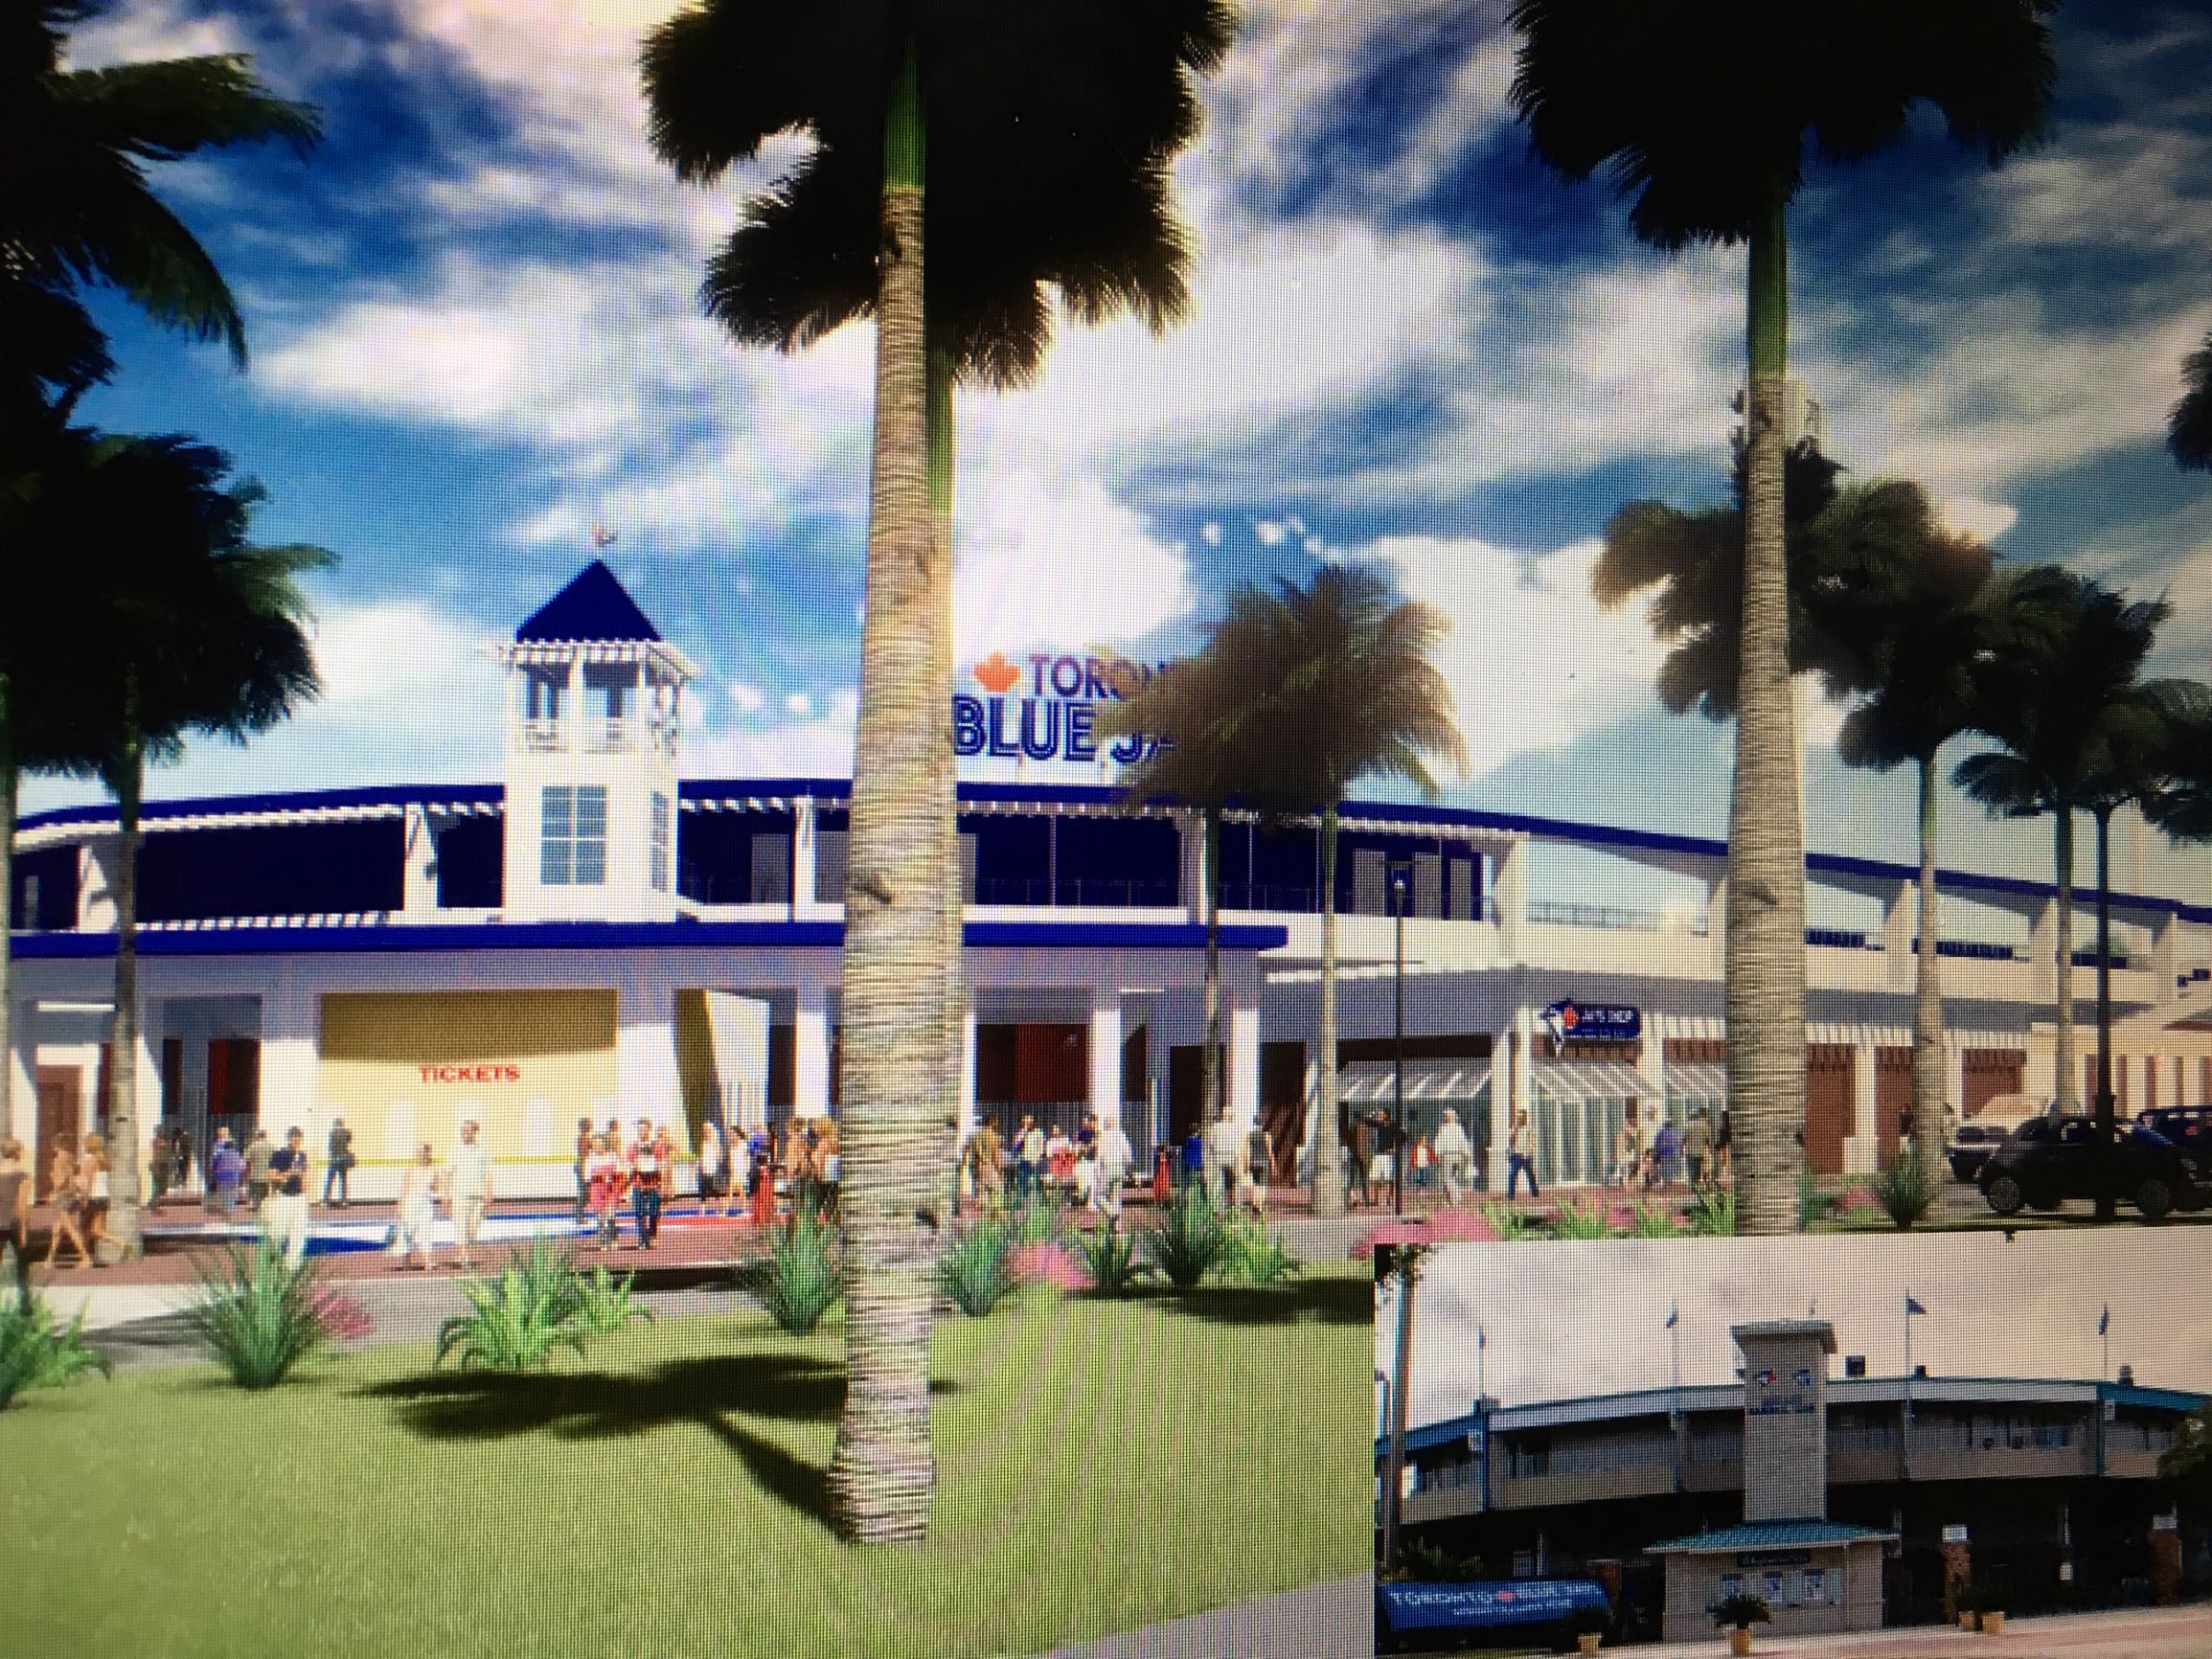 A look at the design for the main entrance of new Dunedin Stadium, which officials say will be ready in time for spring training 2020.